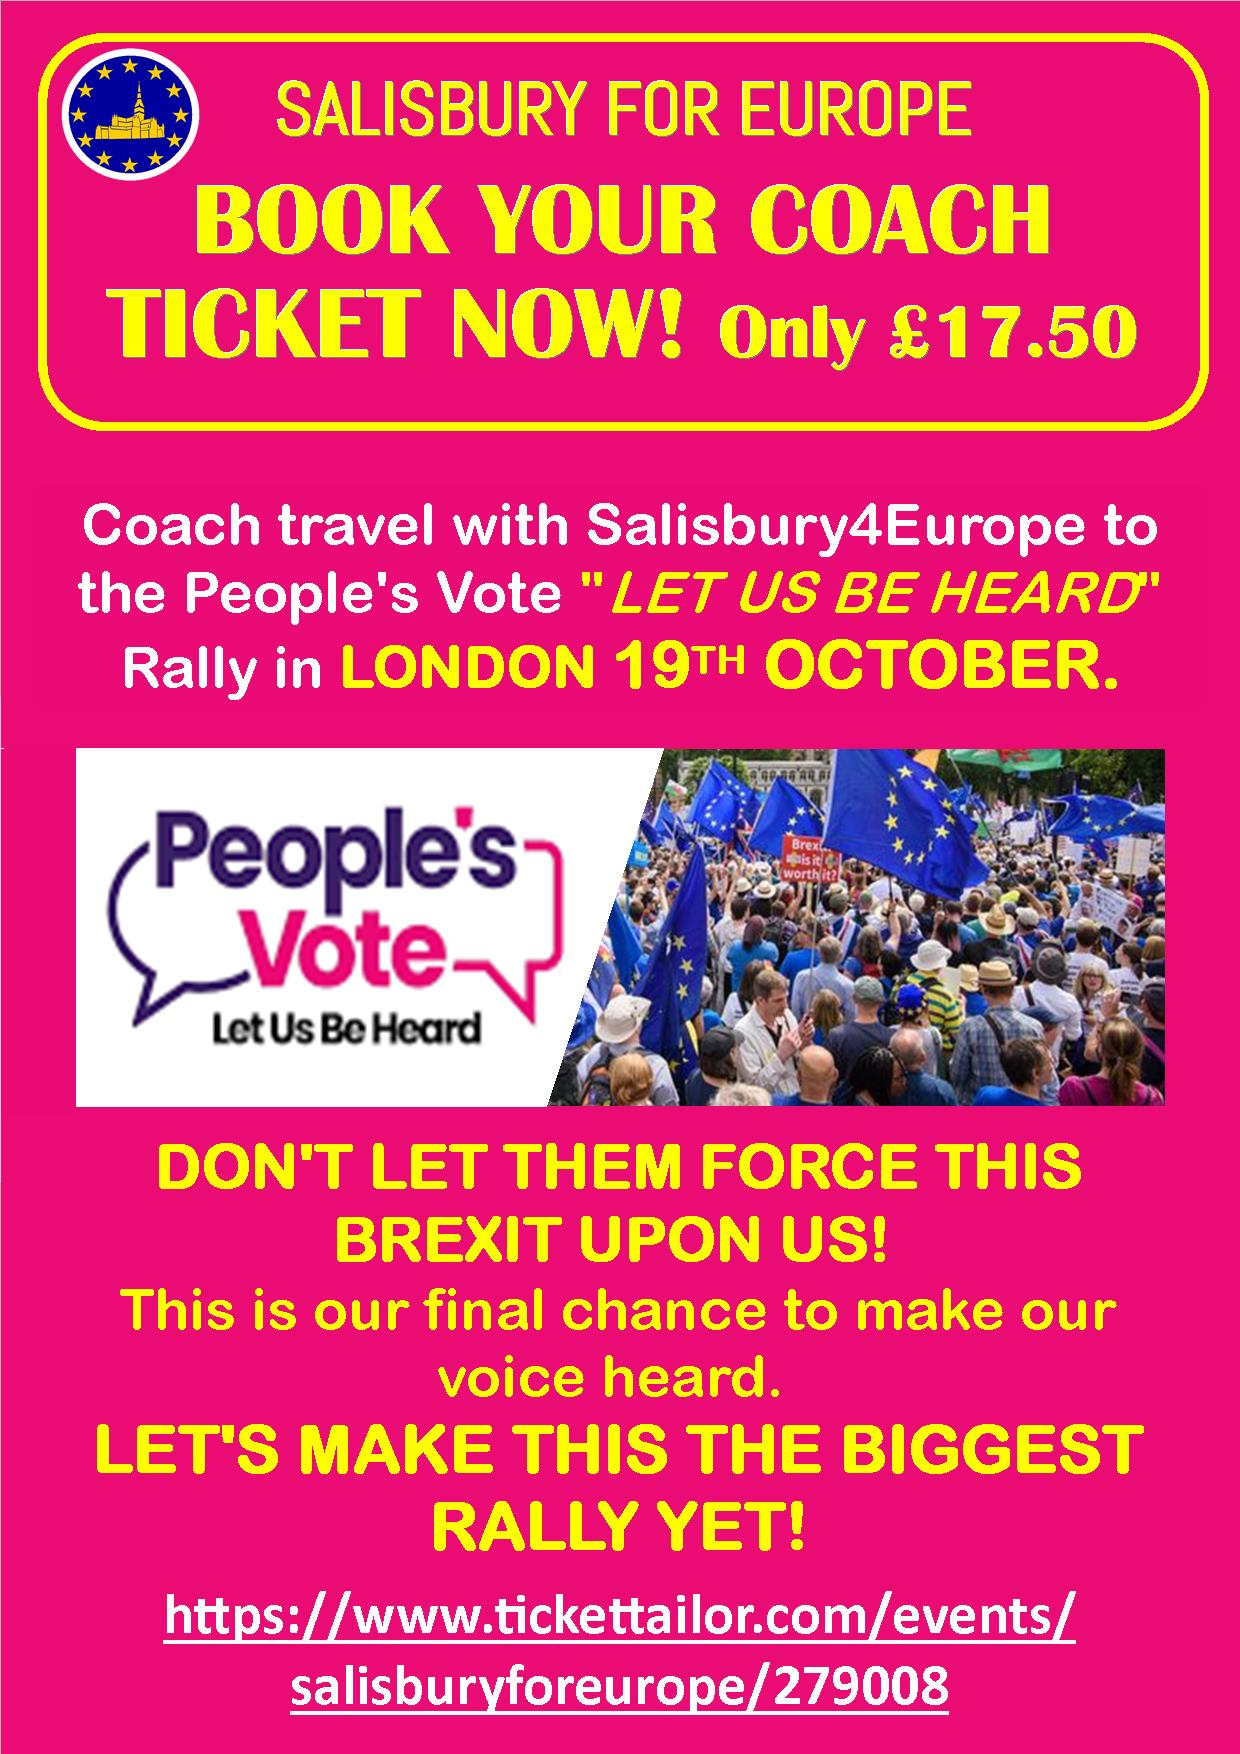 PEOPLE'S VOTE 'Let Us Be Heard' LONDON RALLY Coach Tickets